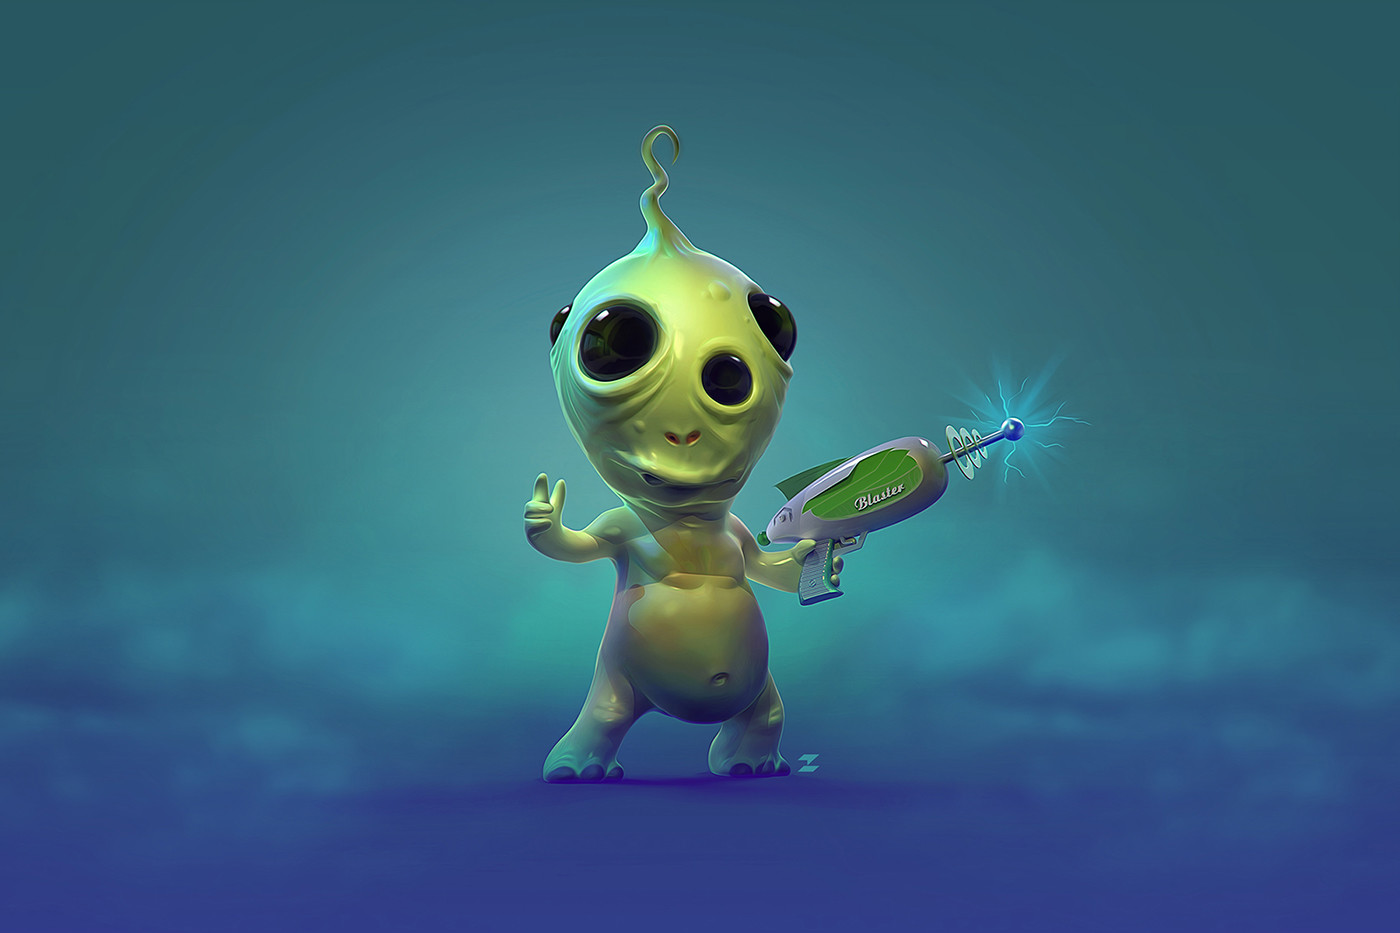 Tomislav zvonaric little alien tomajestic lowres behance